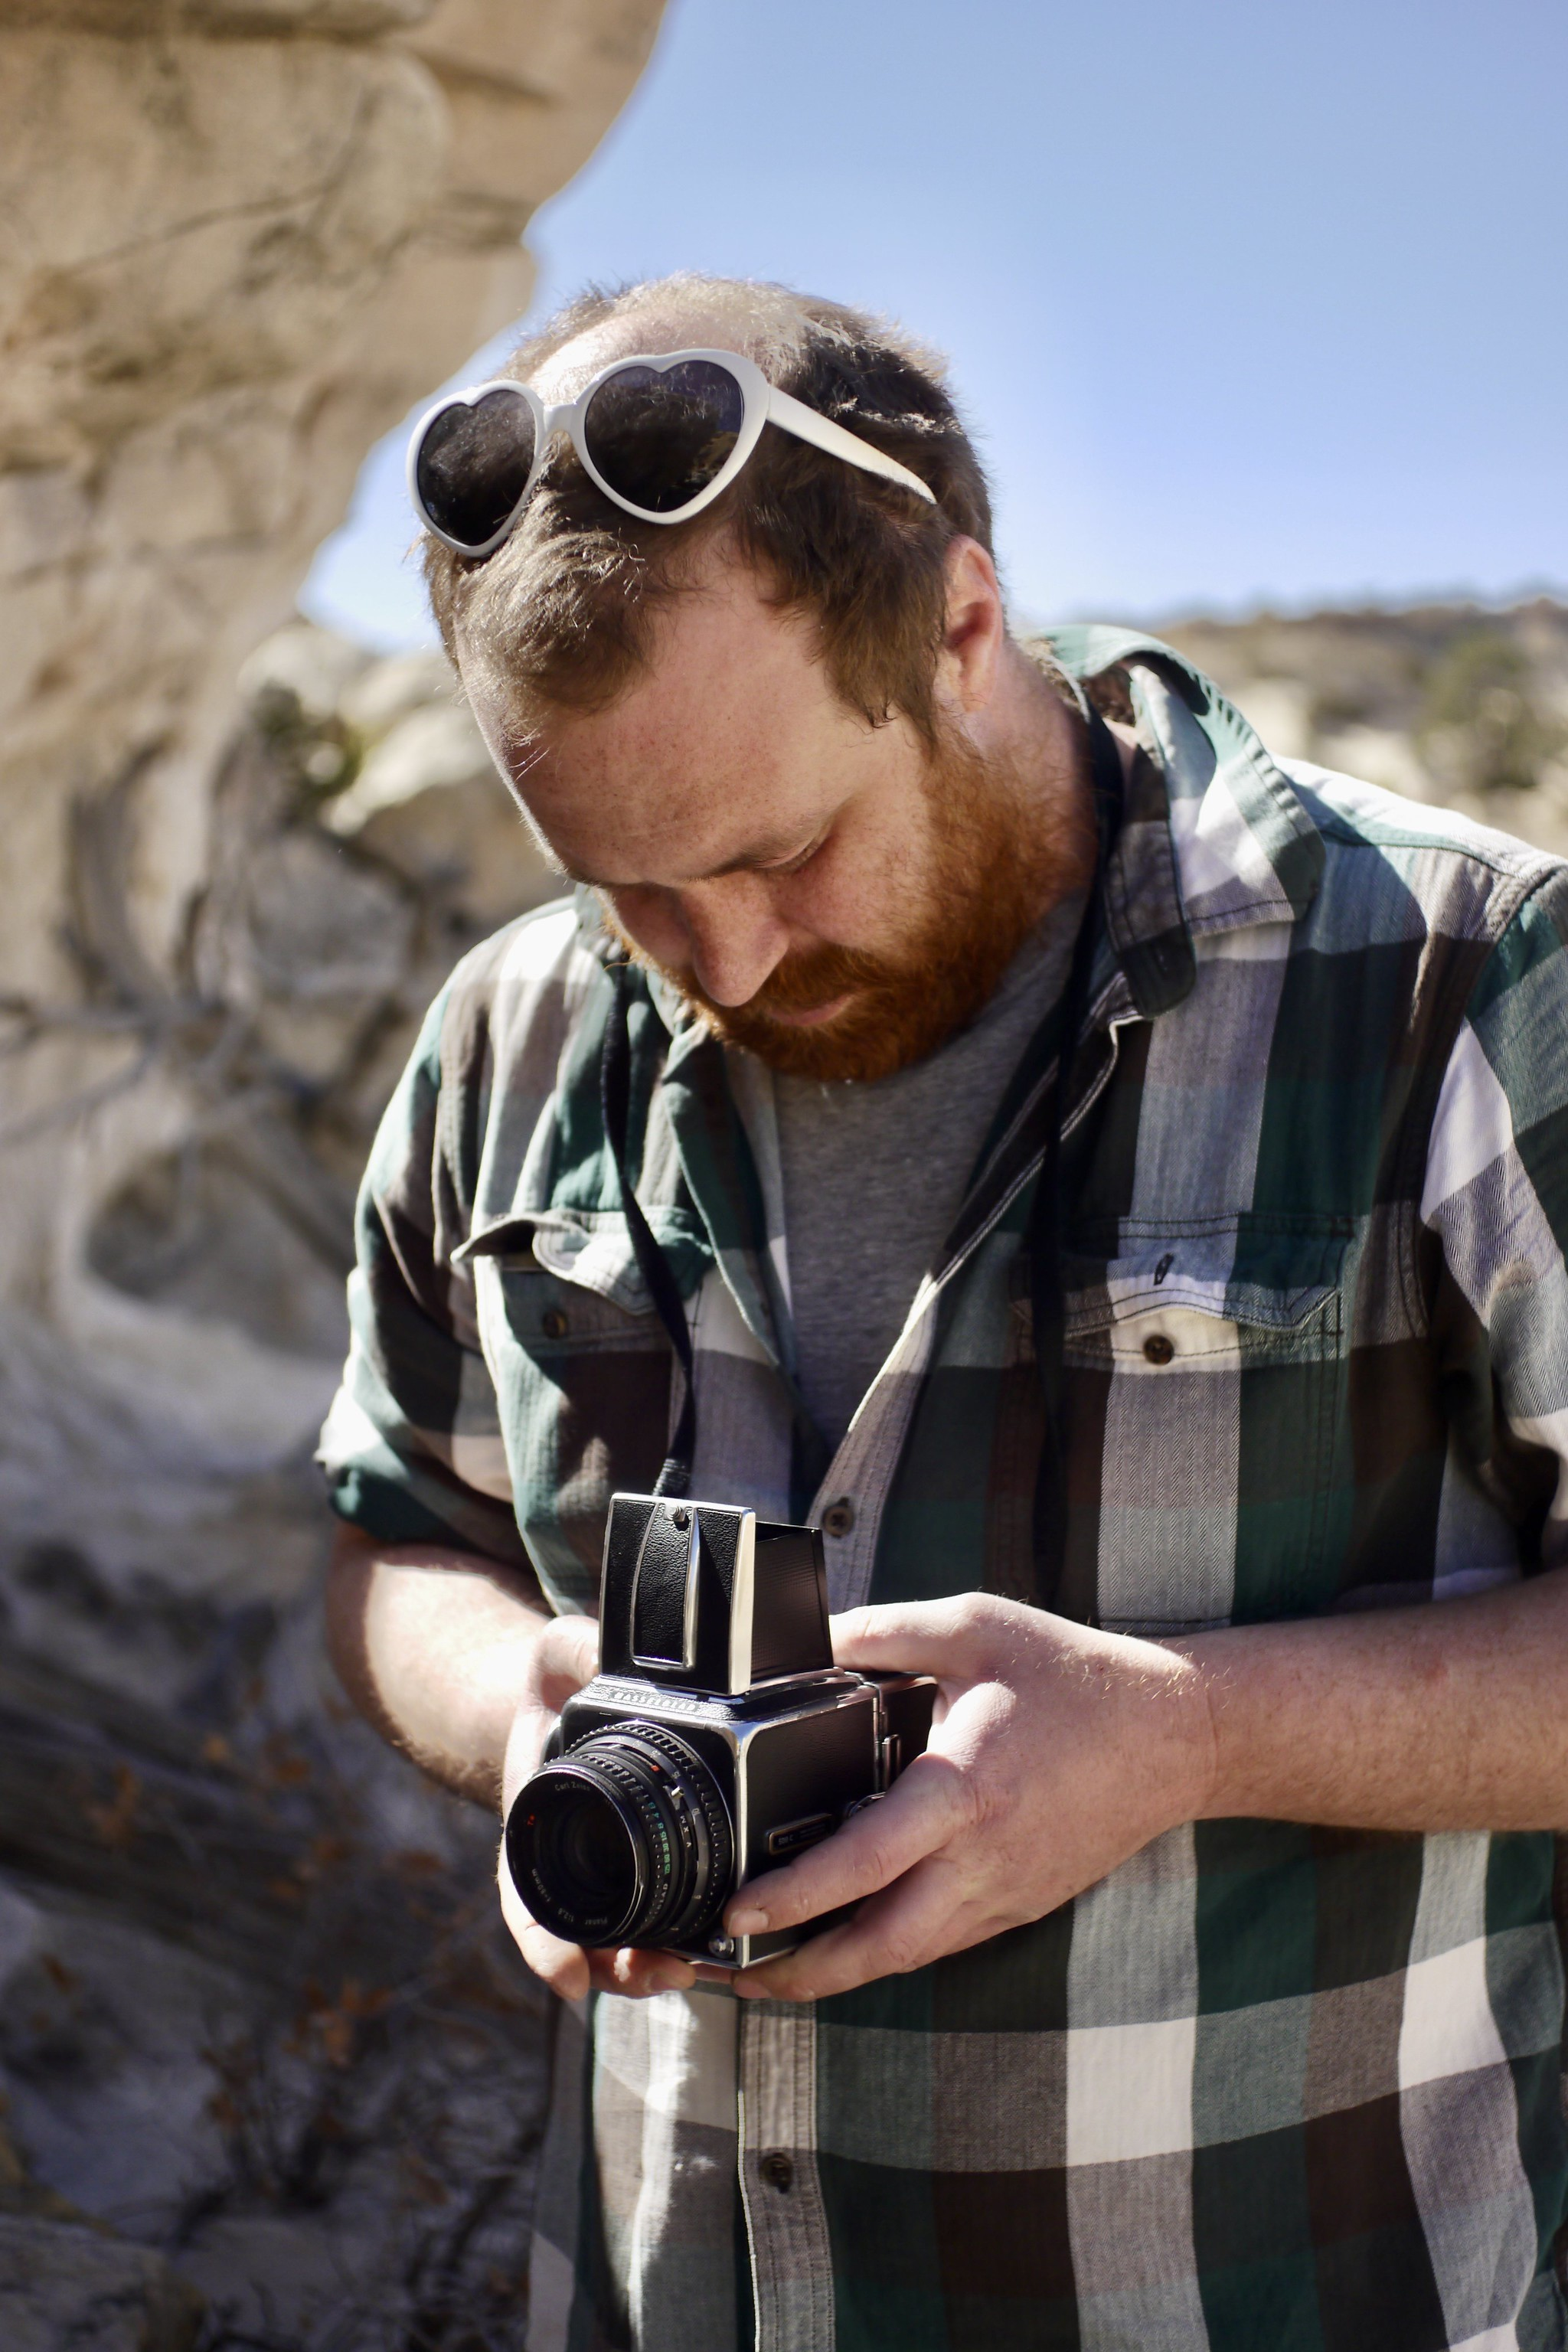 Ethan Moses & Hasselblad at Ojito Wilderness